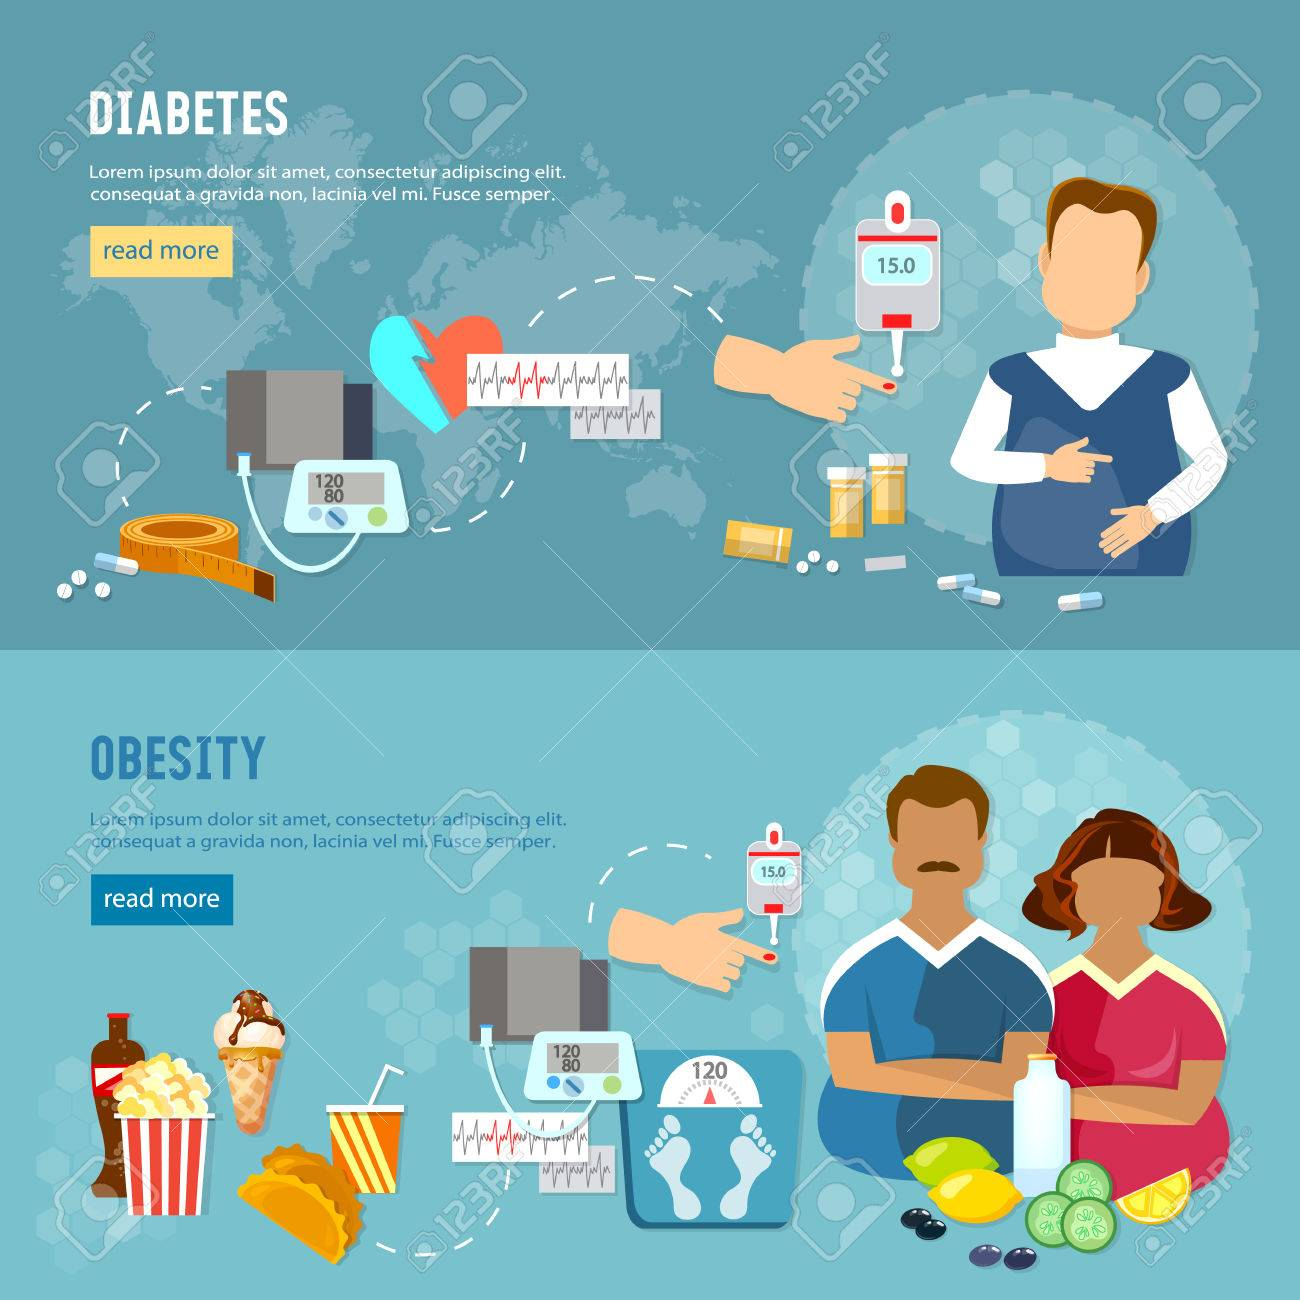 Problems of obesity banner, diabetes, fat man and woman, improper feeding, bad food - 70944704